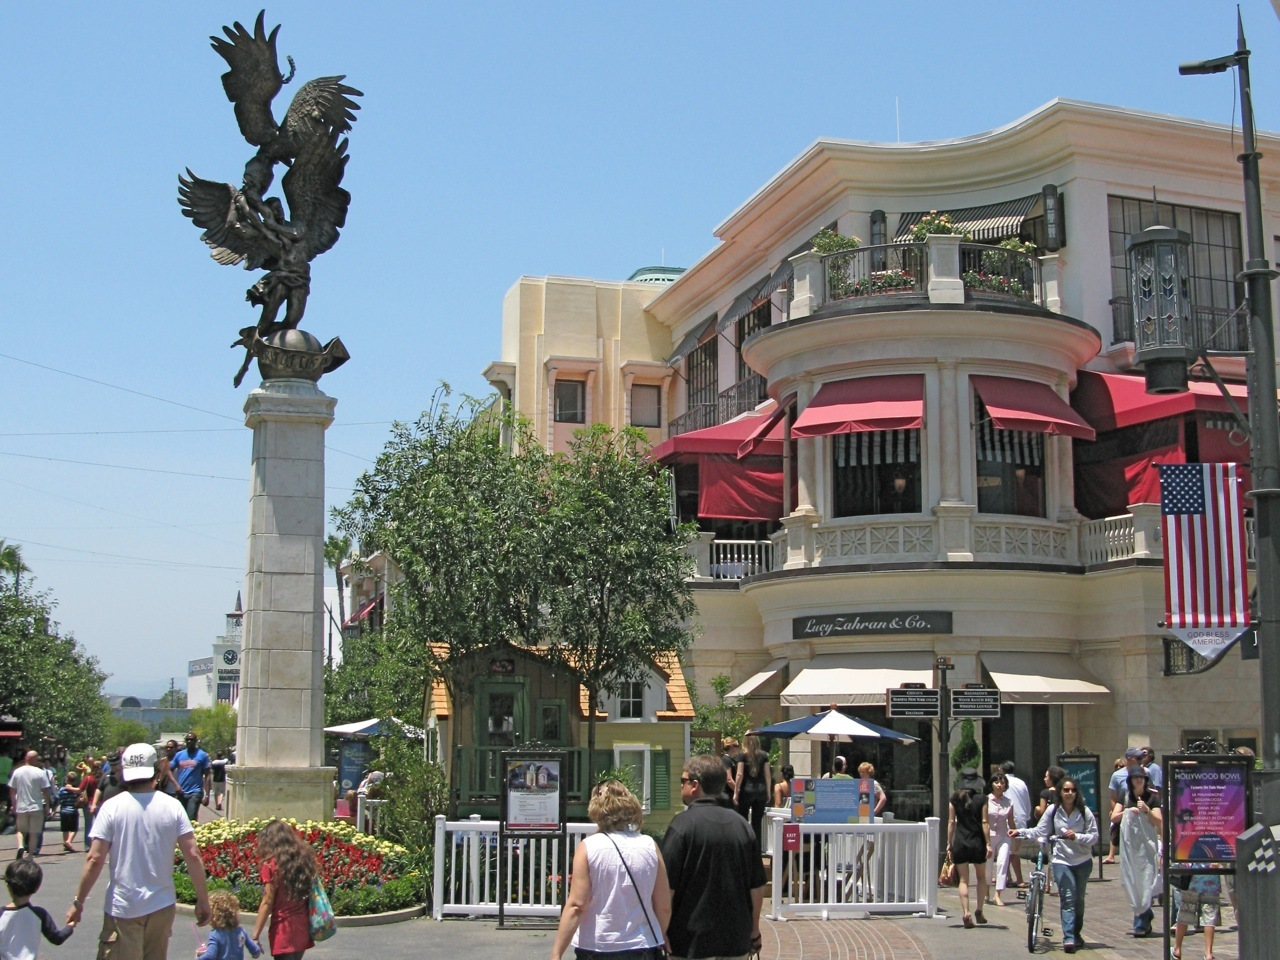 The Spirit of Los Angeles Statue created by sculptor De L'Esprie, shows male and female angels reaching to the heavens. The foot sculpture stands on a foot column at The Grove shopping center in Los Angeles. The spinning marquee of the art-deco-inspired movie theater is designed to be seen from anywhere in the mall.